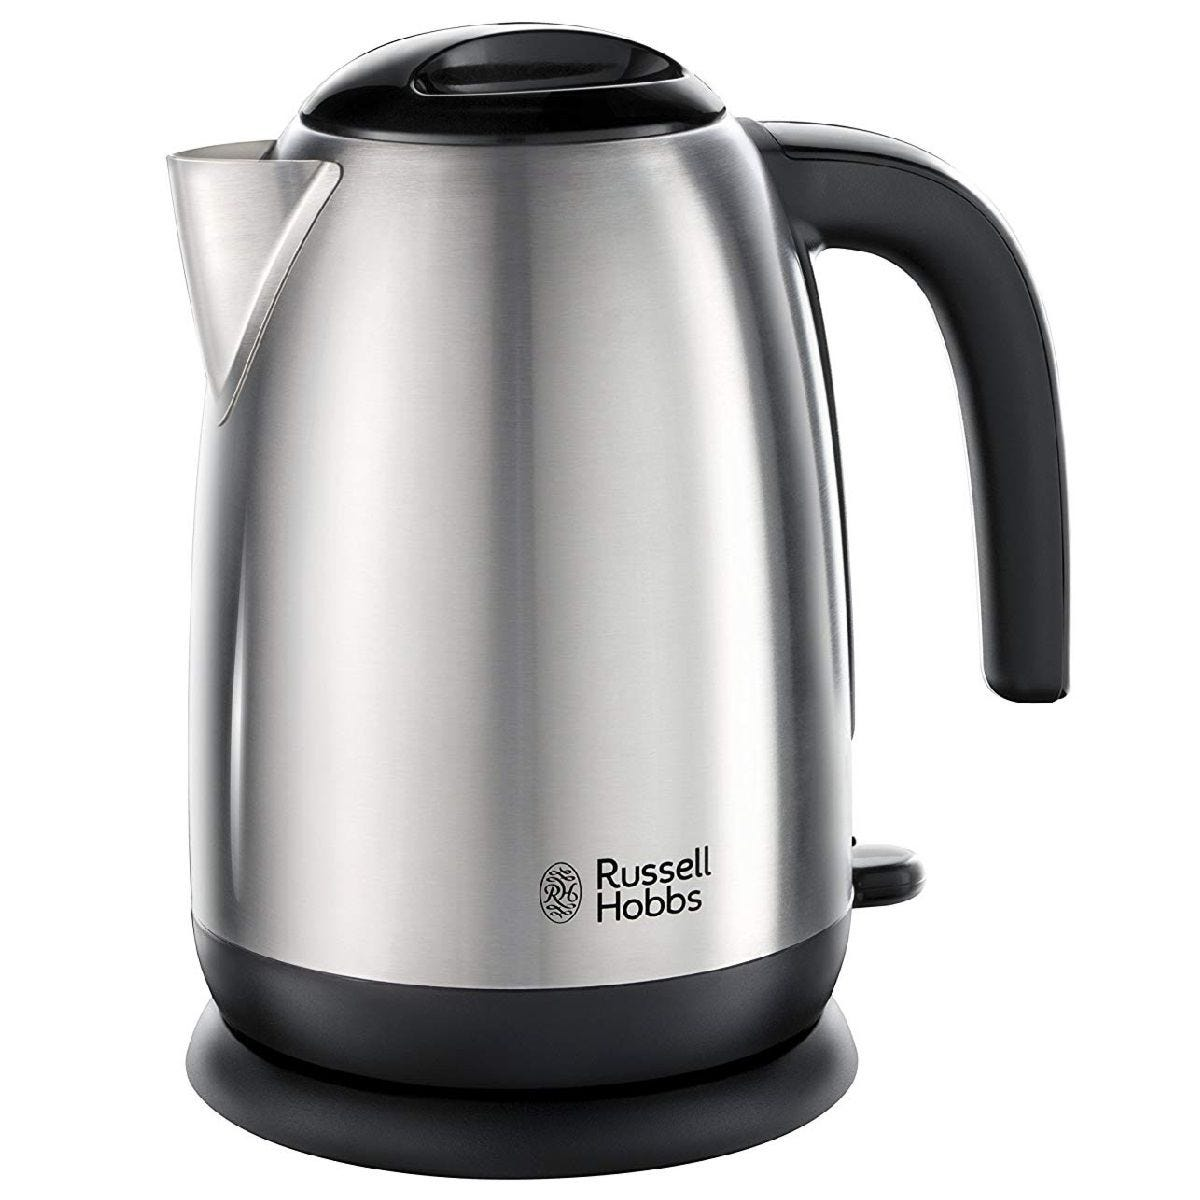 Russell Hobbs 23910 Adventure 1.7L Kettle - Brushed Stainless Steel